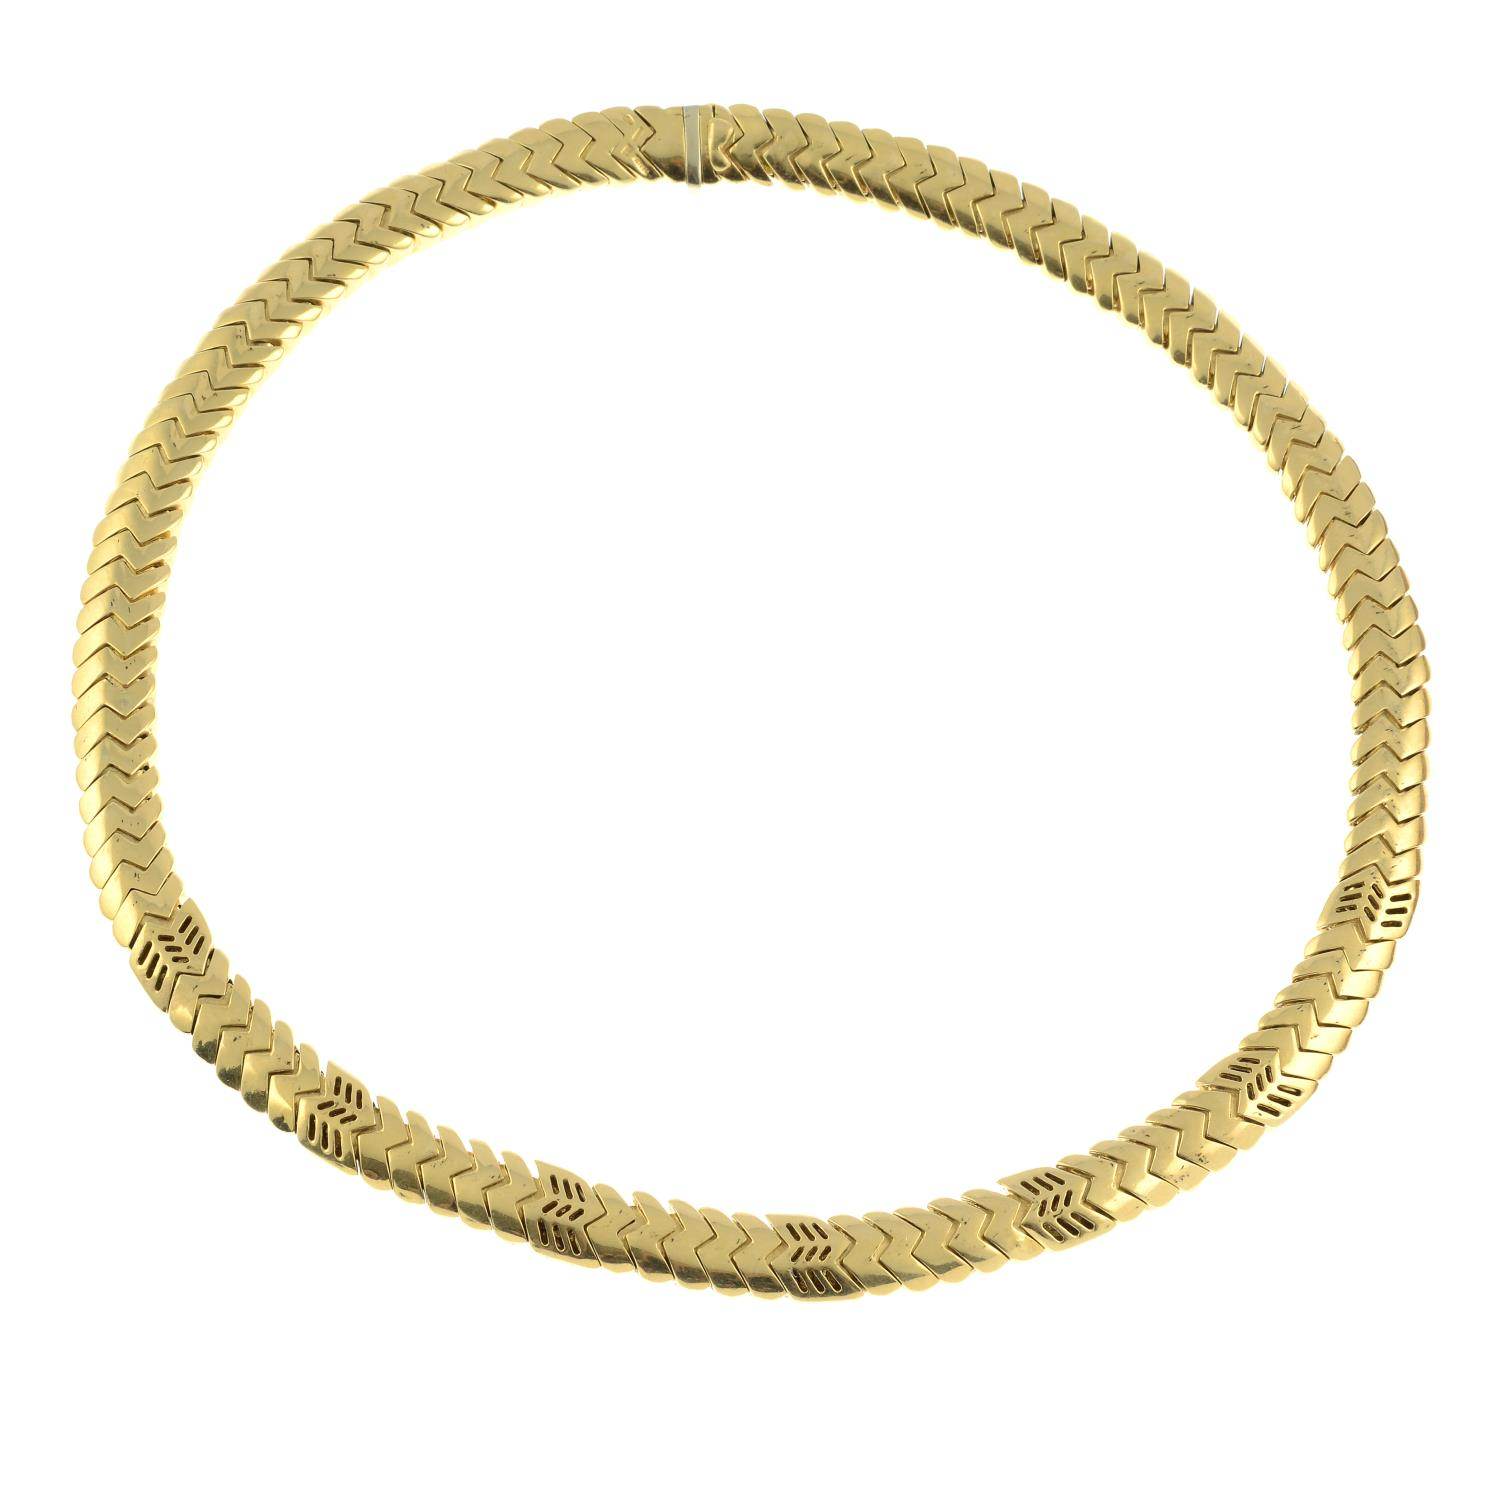 An 18ct gold 'Spiga' necklace, by Bulgari. - Image 5 of 6